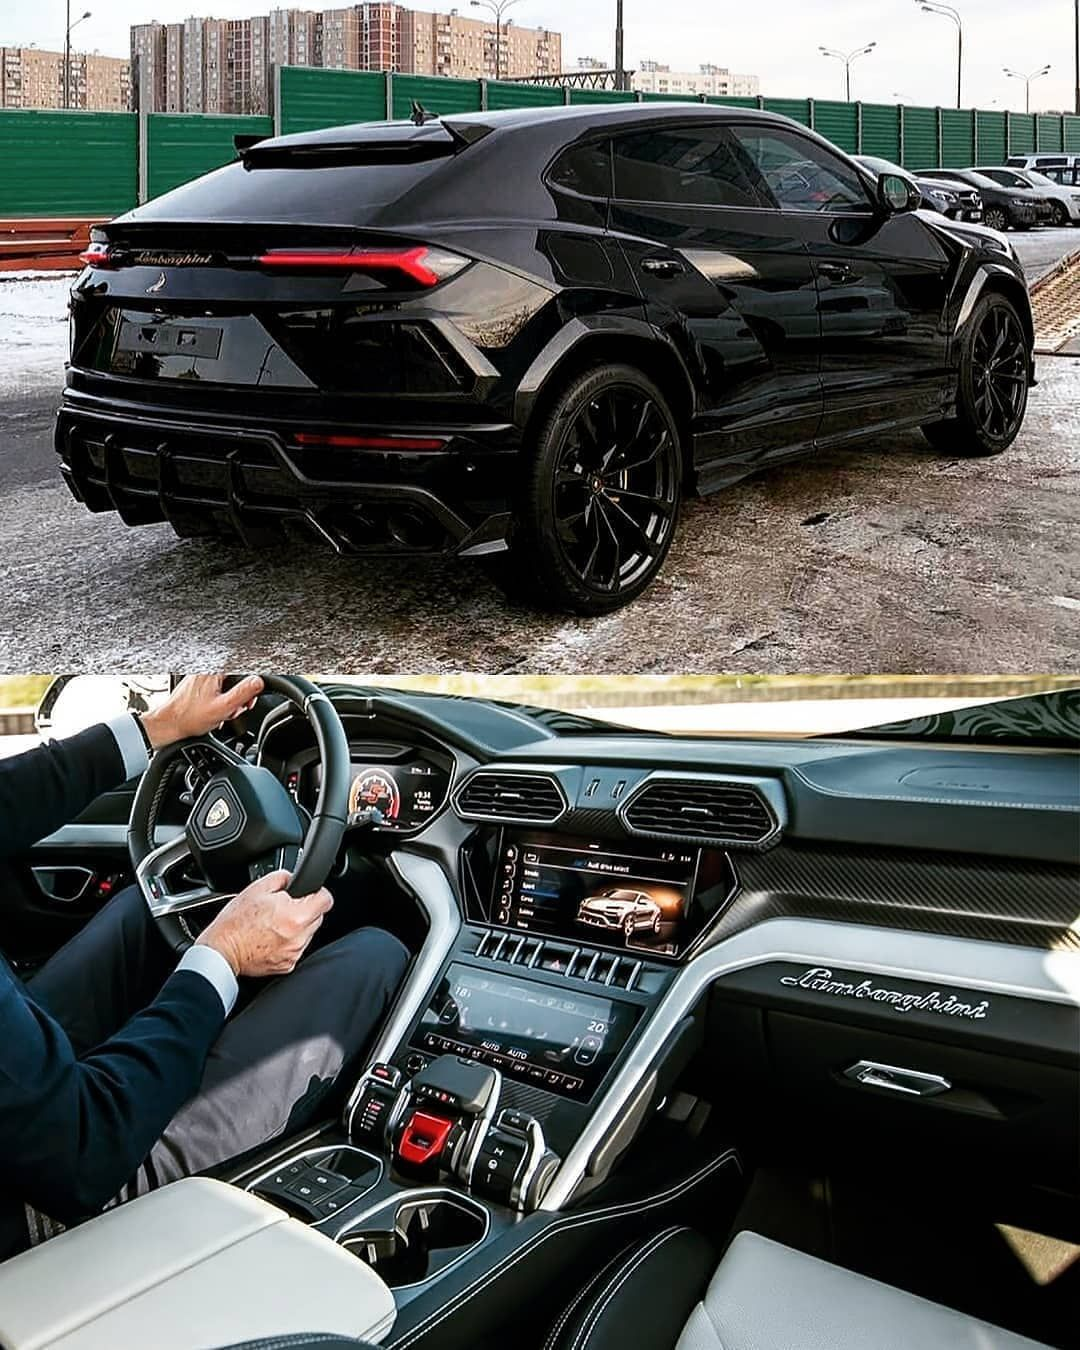 "BLACK EDITION on Instagram: ""♠️ Lamborghini Urus 😍 What do you think of this design and interior? ◾ RATE : 0-10 ◾ Subscribe/Подпишись ◾ @black__edition_"""